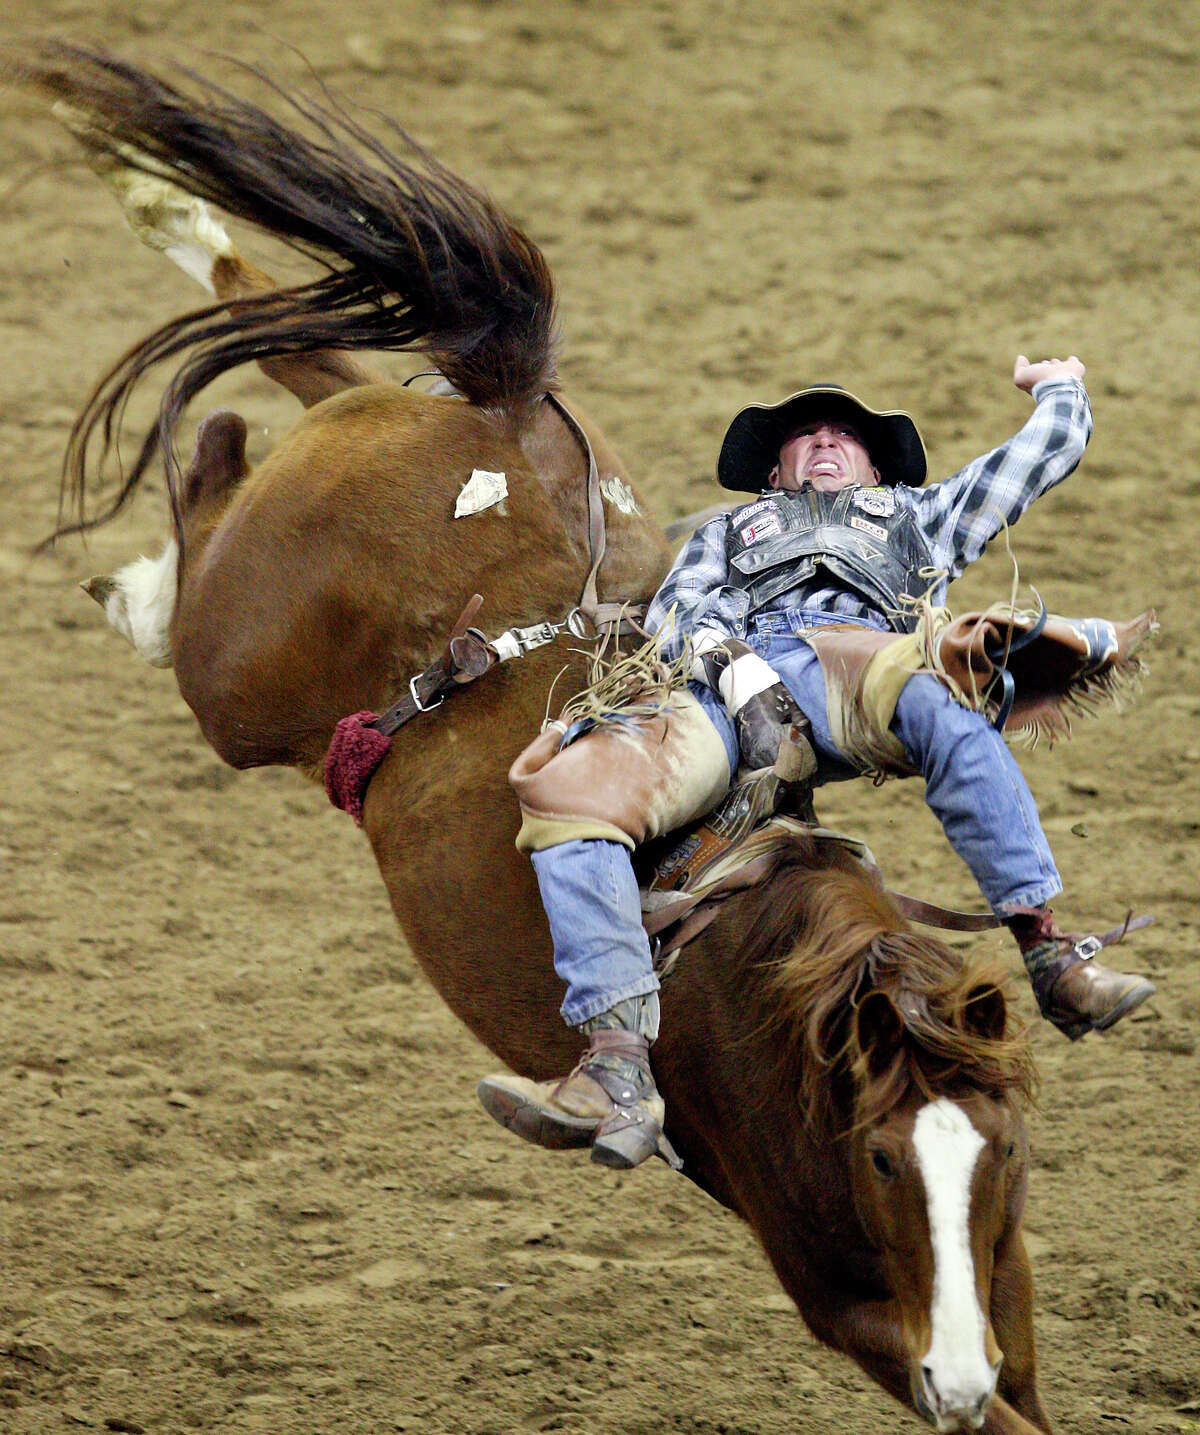 George Gillespie IV , from Elgin , OR , competes in the Bareback Riding event Monday Feb. 7, 2011 during the San Antonio Stock Show & Rodeo at the AT&T Center. Gillespie scored a 77 on the ride.